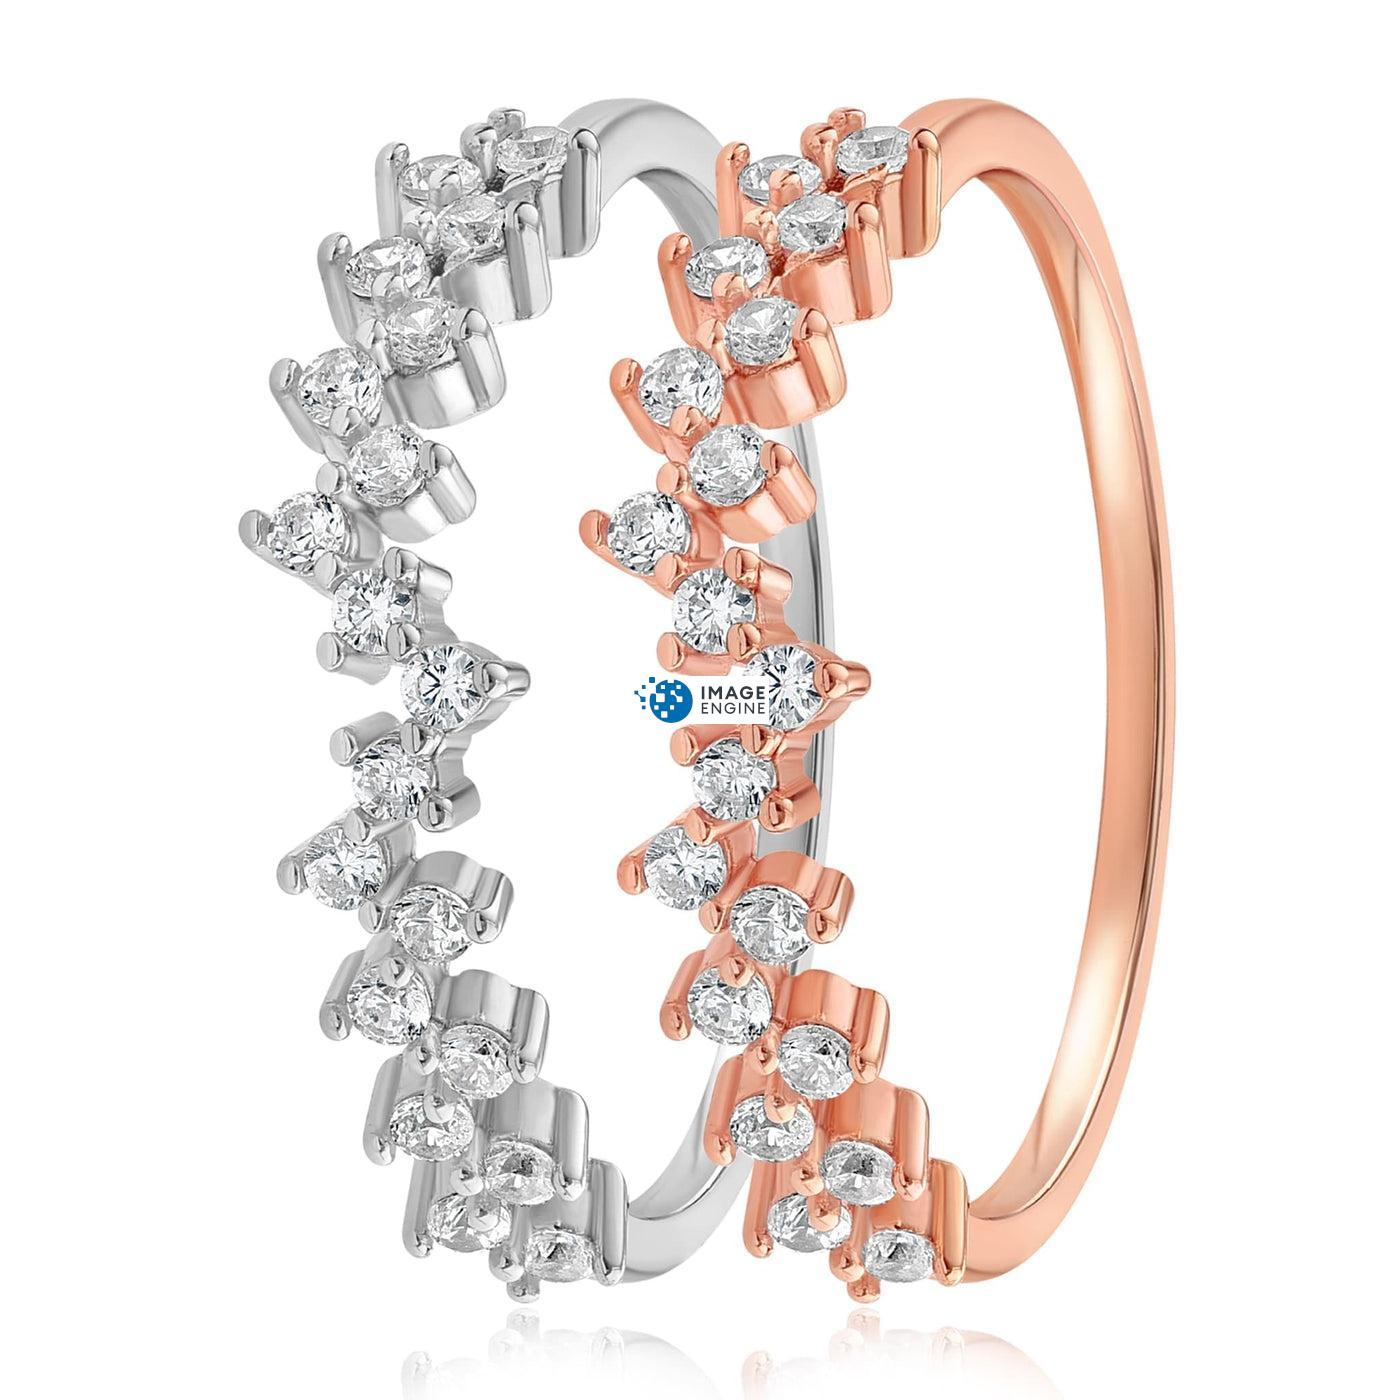 Esther Petite Cluster Ring - Side by Side - 925 Sterling Silver and 18K Rose Gold Vermeil